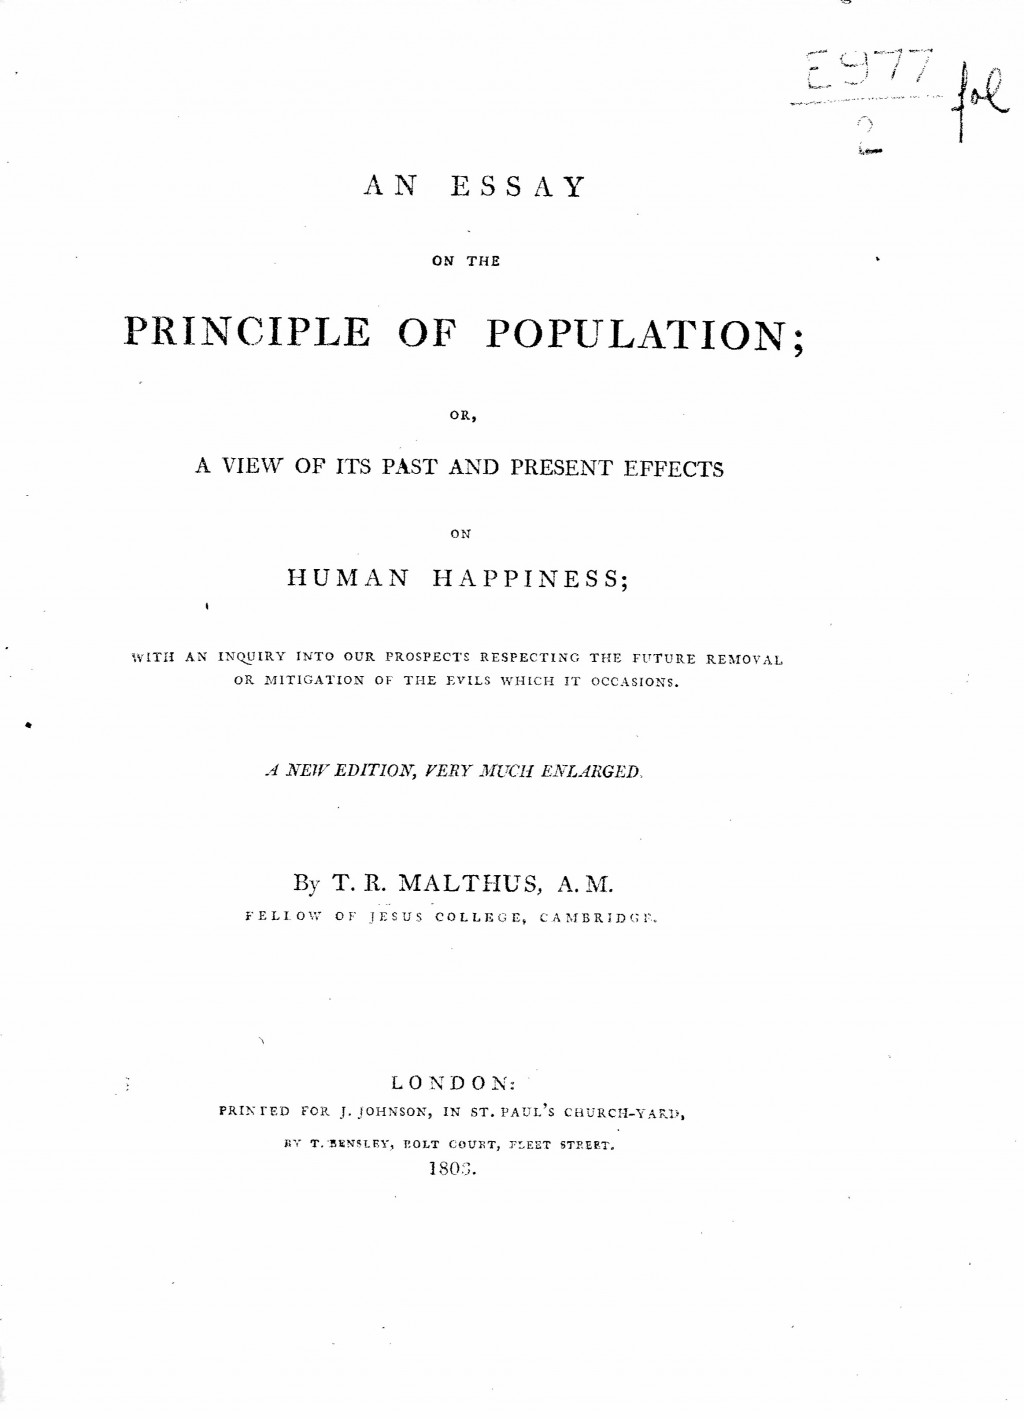 003 Thomas Malthus An Essay On The Principle Of Population 2fol Marvelous Summary Analysis Argued In His (1798) That Large